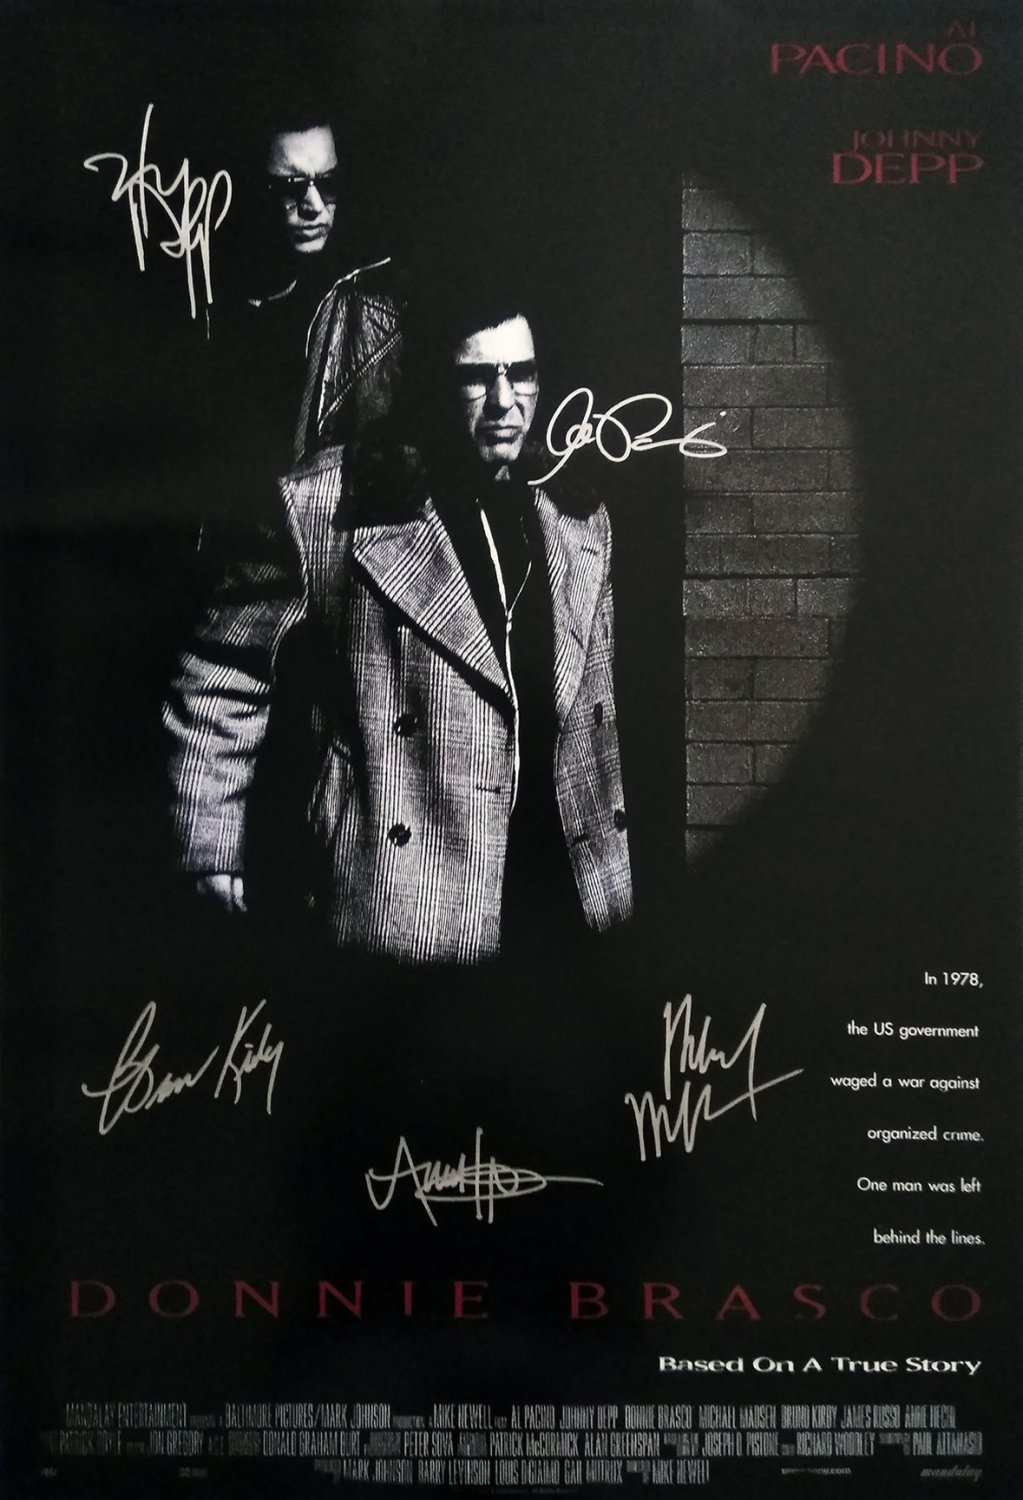 signed DONNIE BRASCO MOVIE Poster by 5 members of the Cast